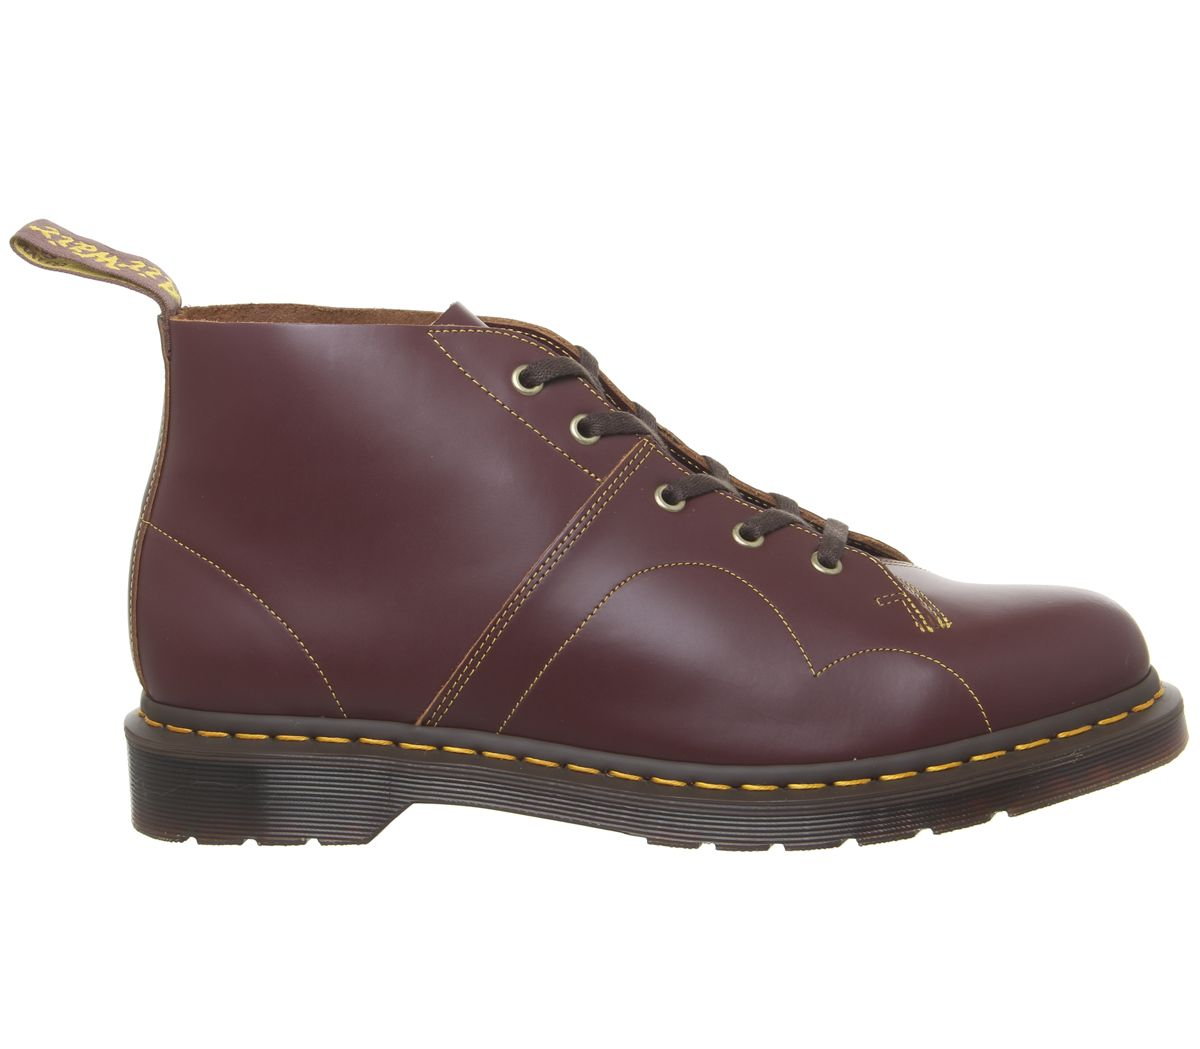 d9ccb15528b Details about Mens Dr. Martens Church Monkey Boots Oxblood Smooth Boots